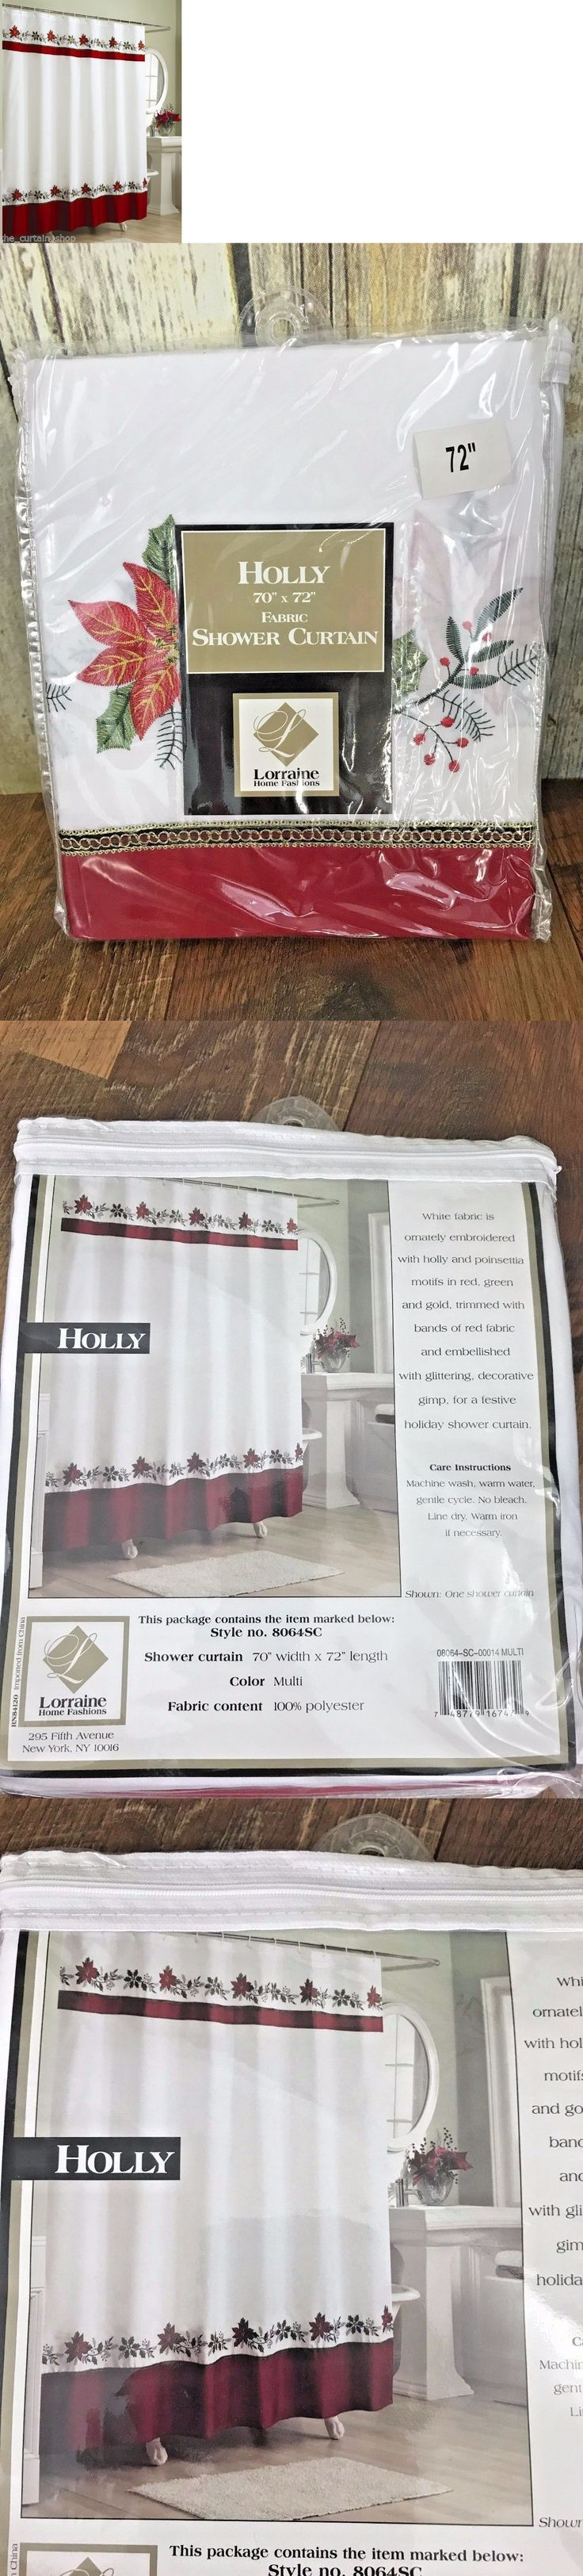 Christmas shower curtains on ebay - Shower Curtains 20441 New Lorraine Home Fashions Holly Shower Curtain 70 By 72 Christmas Holiday